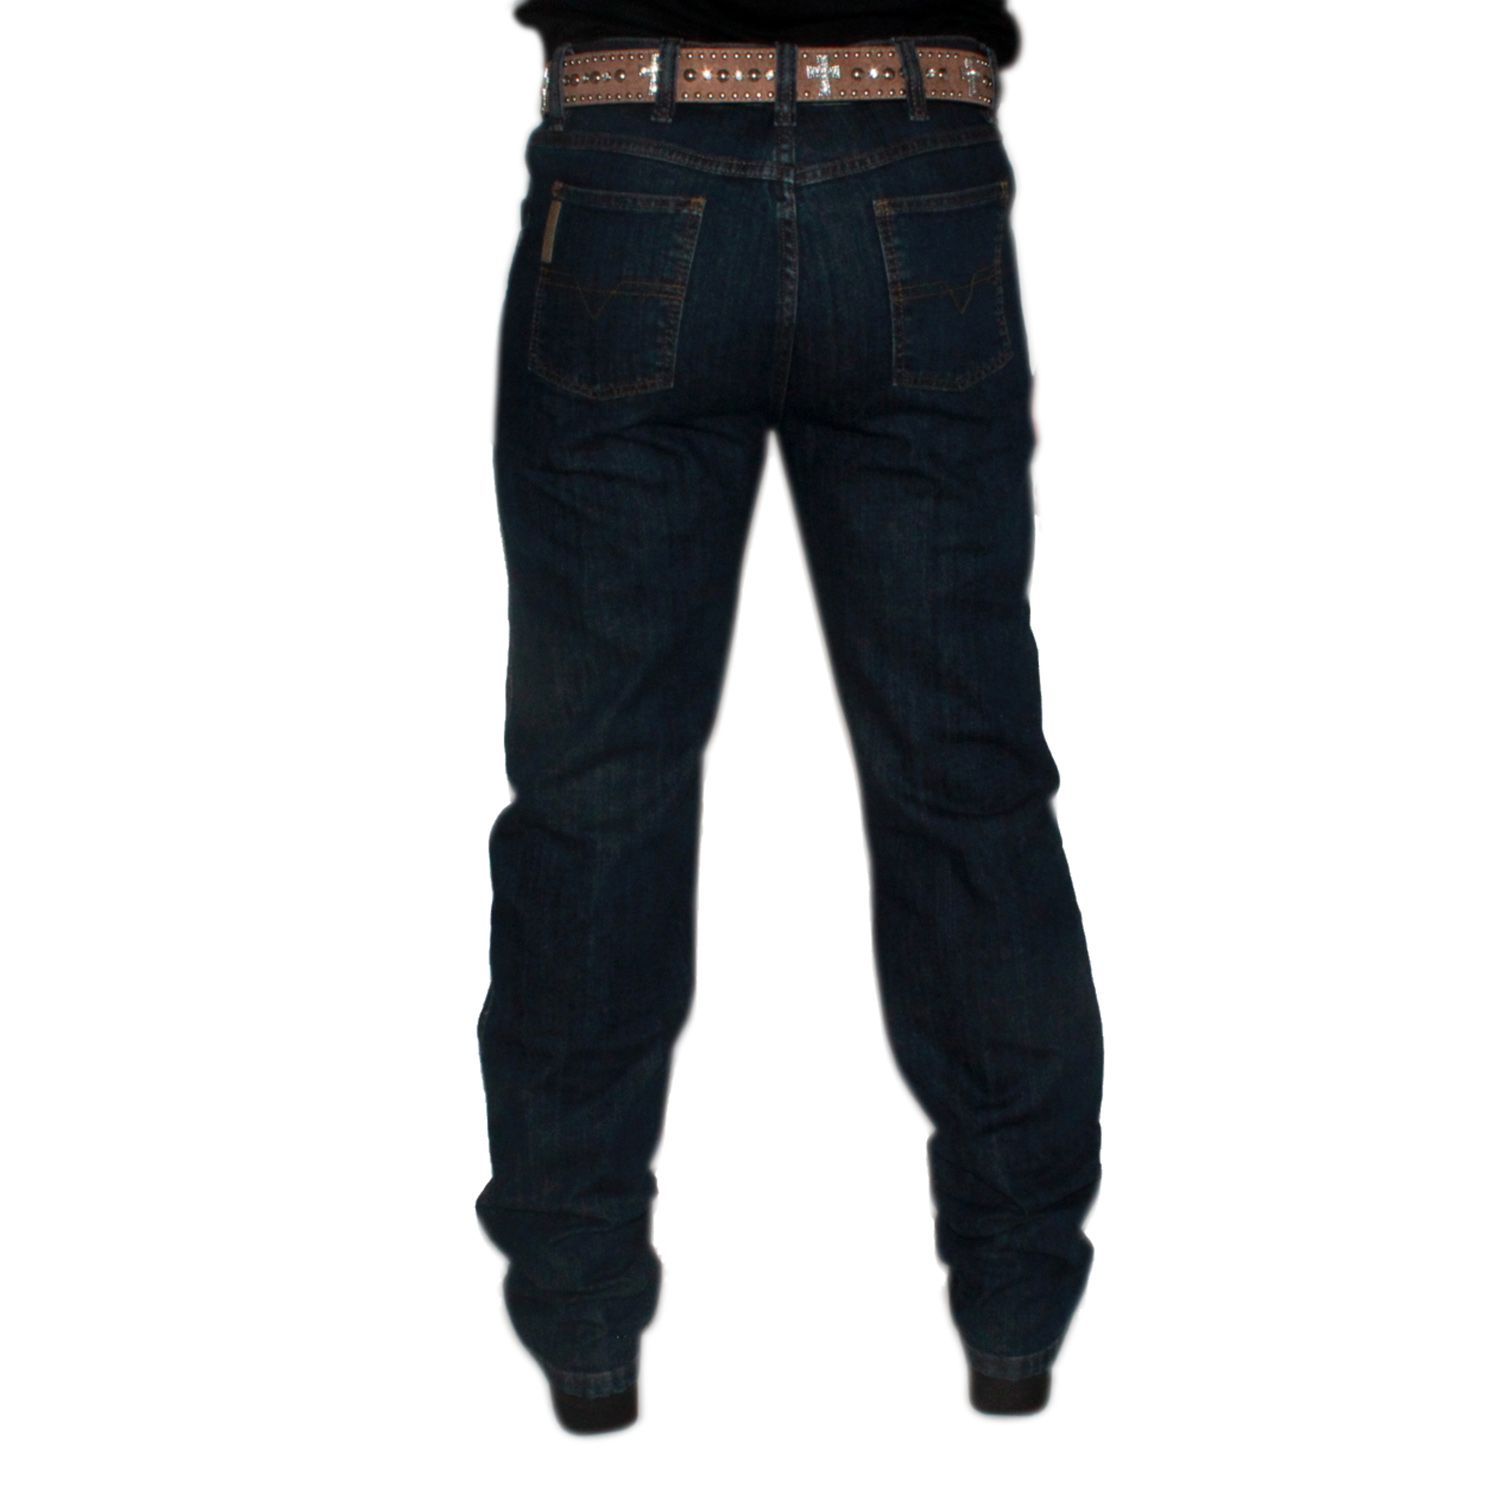 Calça Jeans Indian Farm Elastano WG